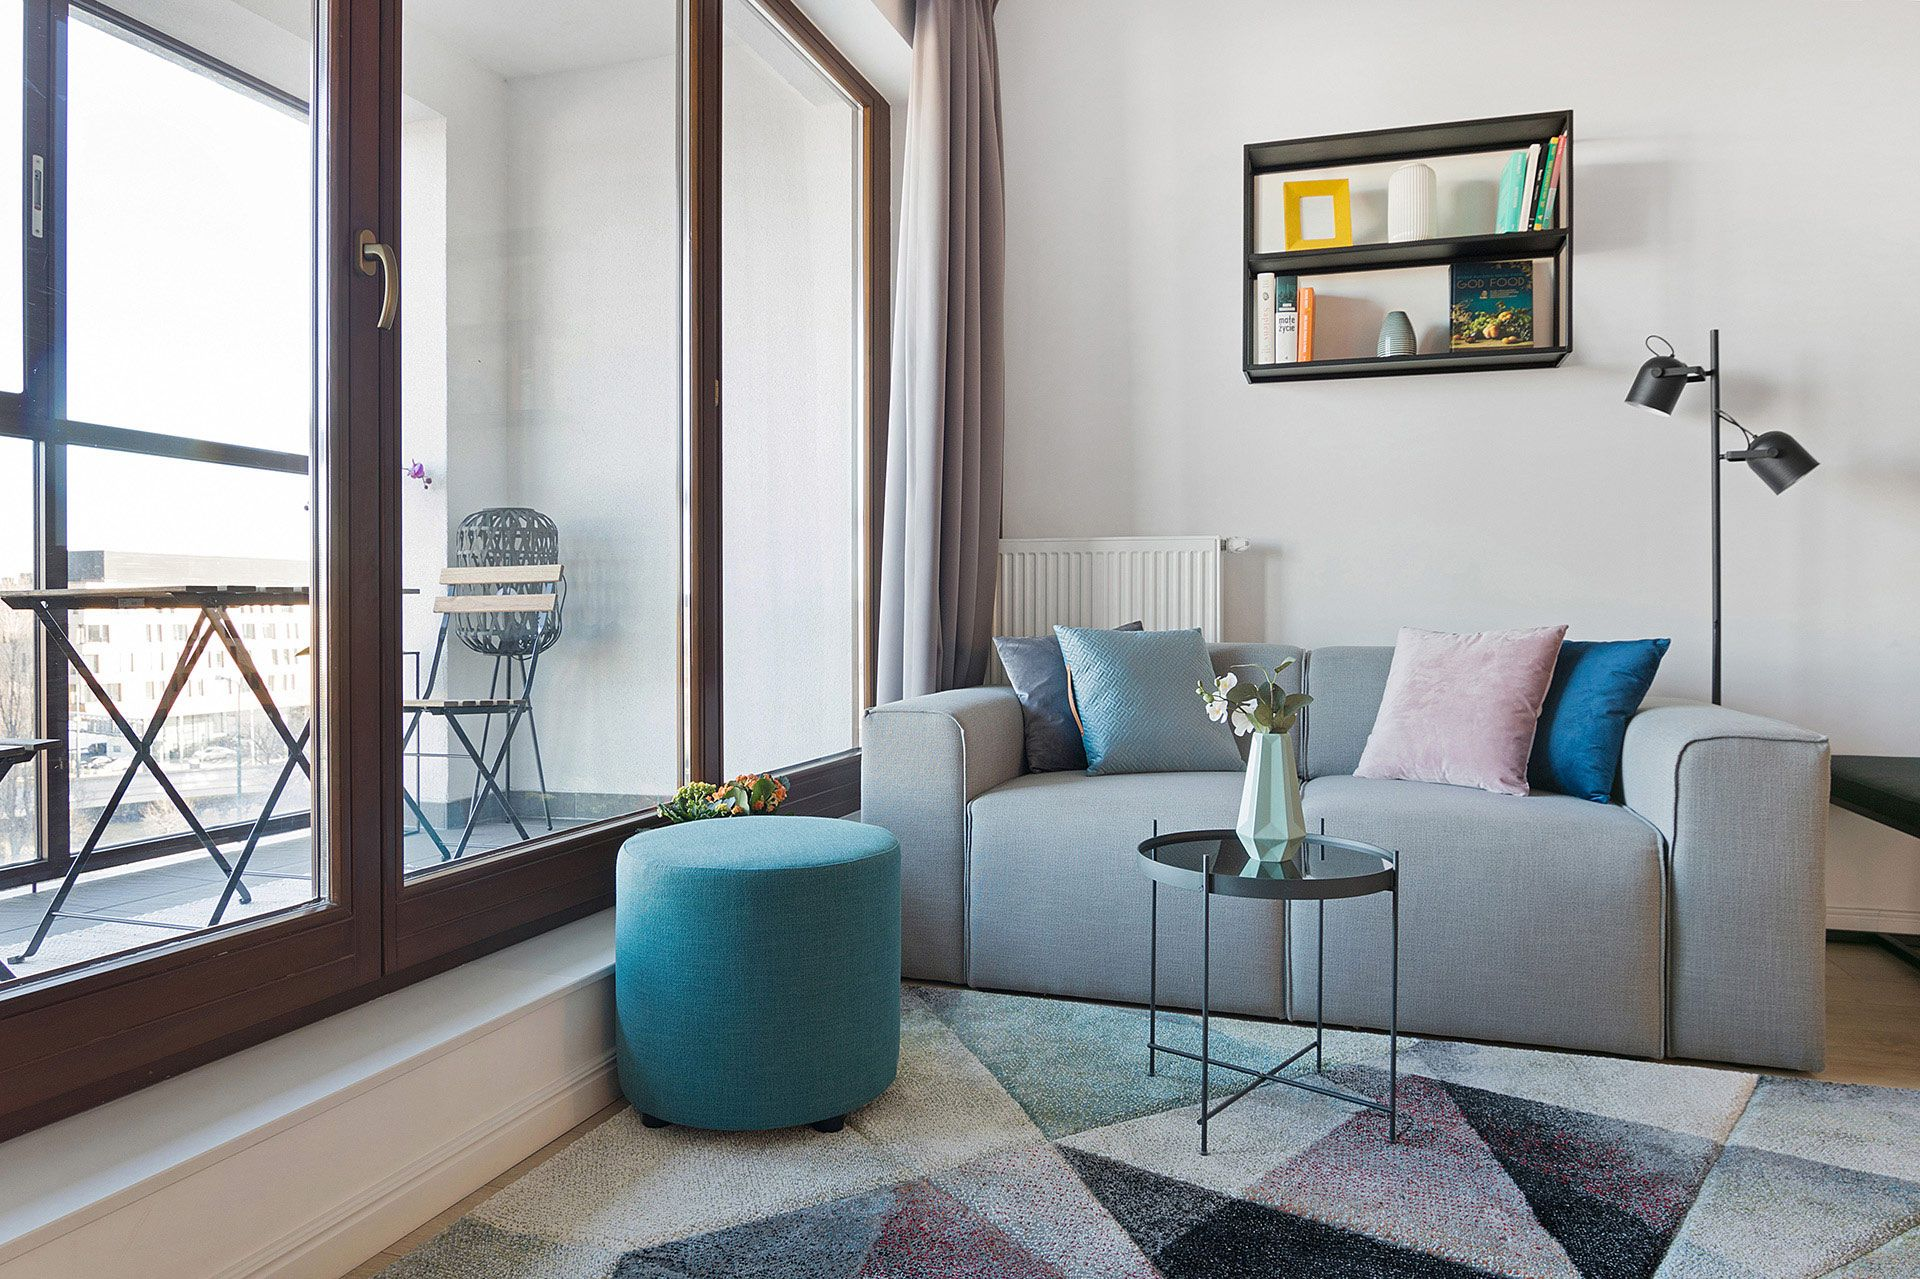 Studio - Large apartment to rent in Warsaw UPR-A-082-3